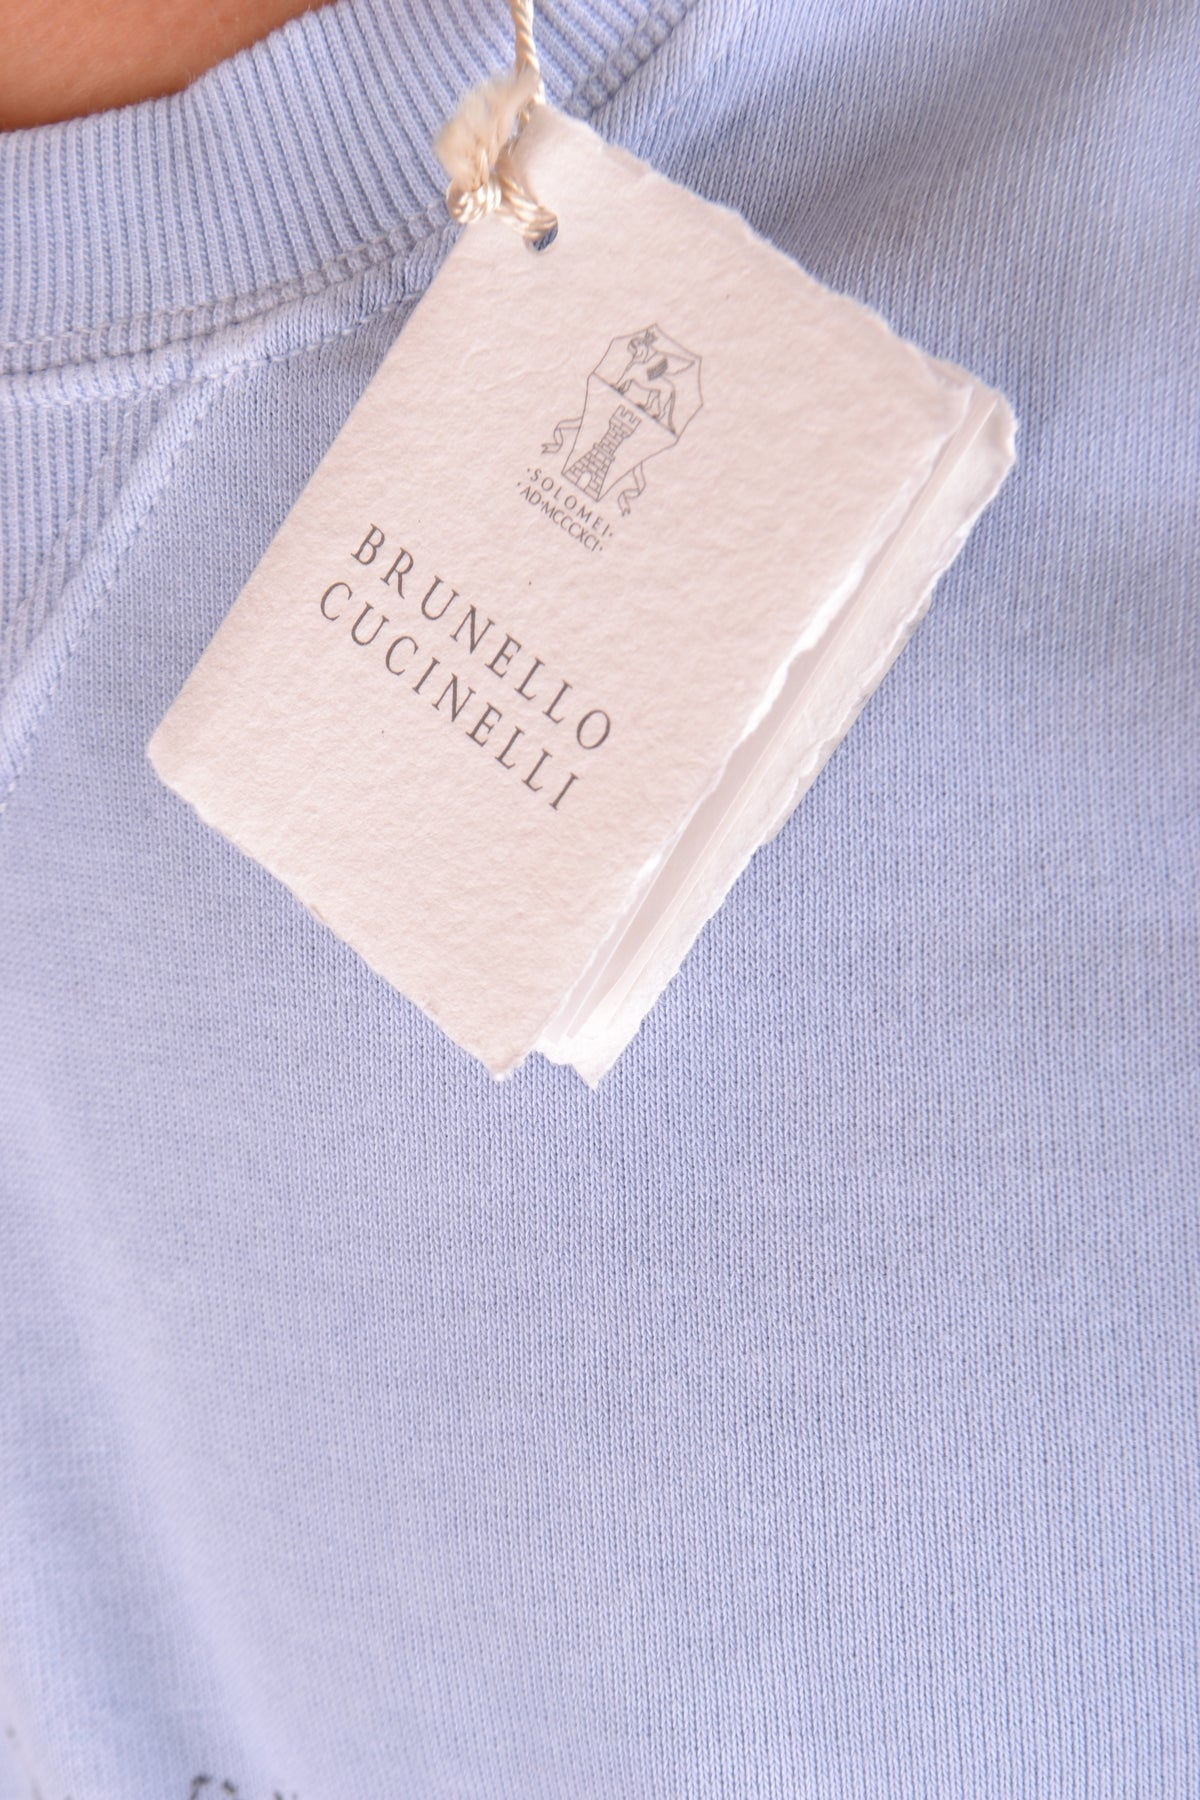 Sweater Brunello Cucinelli-Sweater - MAN-Product Details Season: Spring / SummerTerms: New With LabelMain Color: BlueGender: ManMade In: ItalyManufacturer Part Number: Mtt343560 Ck694Size: IntYear: 2018Clothing Type: Sweater Composition: Cotton 100%-Keyomi-Sook